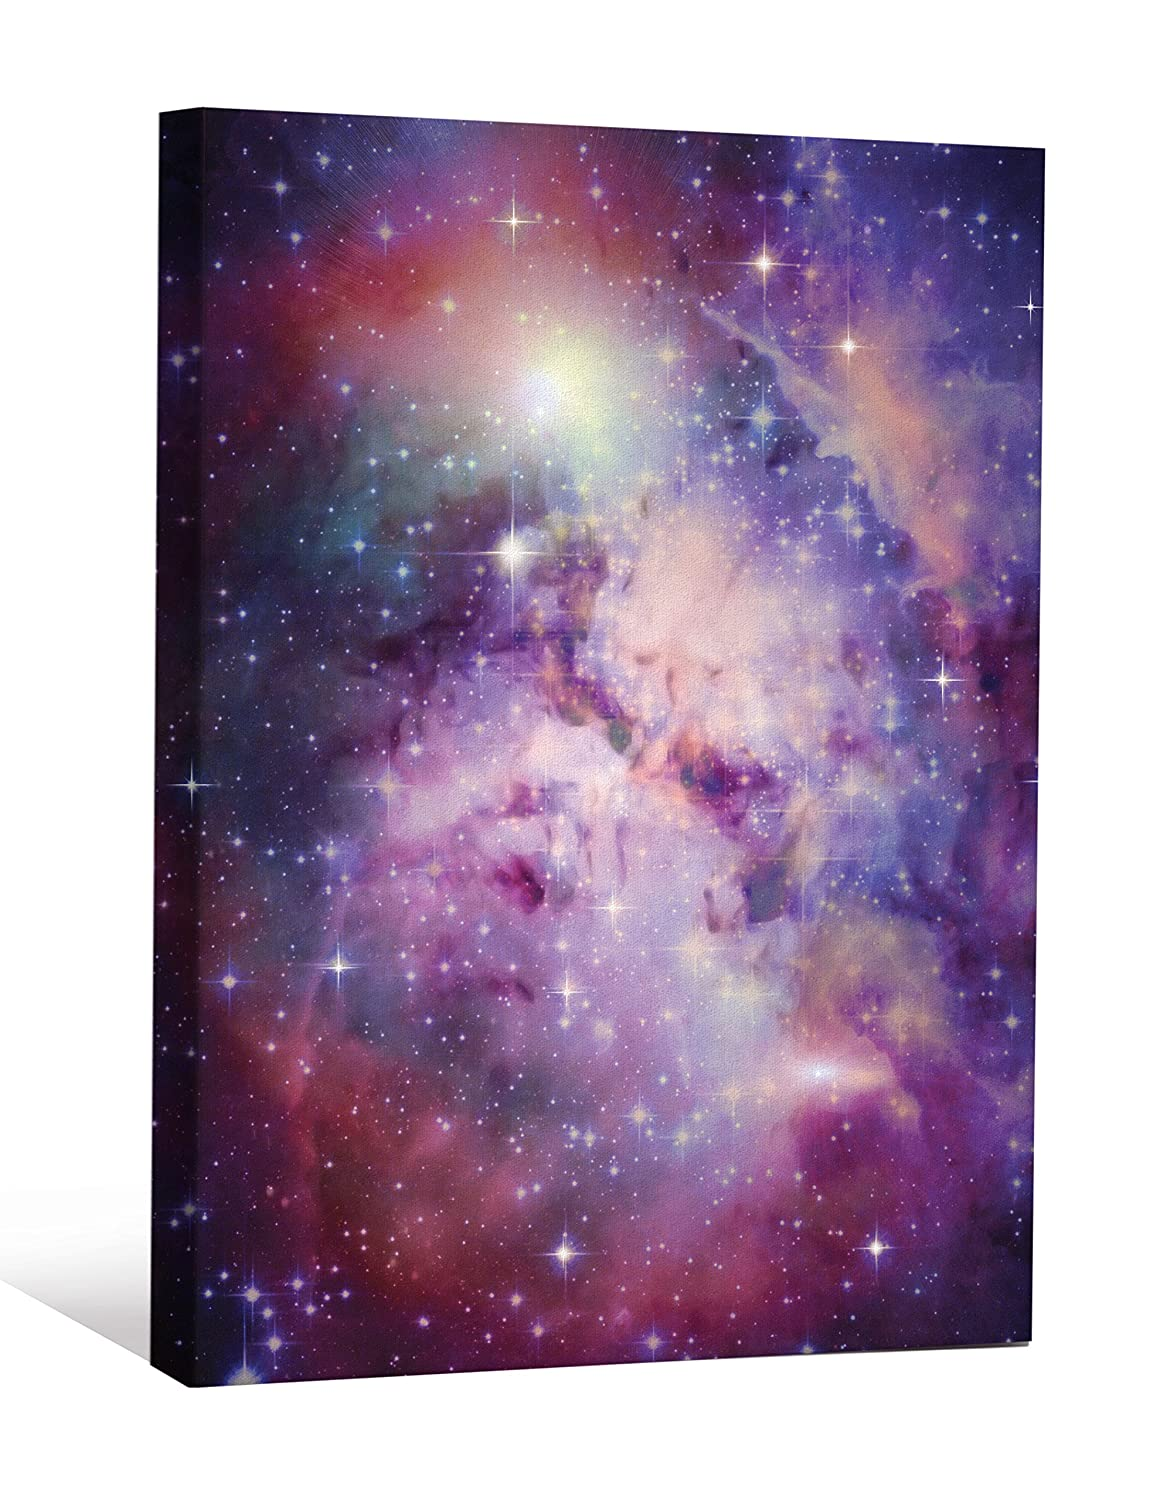 Cosmos Space Nebula Hubble At 12 Wide x 16 High Cosmos Space Nebula Hubble At 12 Wide x 16 High JP London Design JP London SCNV2323 2 Thick Heavyweight Gallery Wrap Canvas